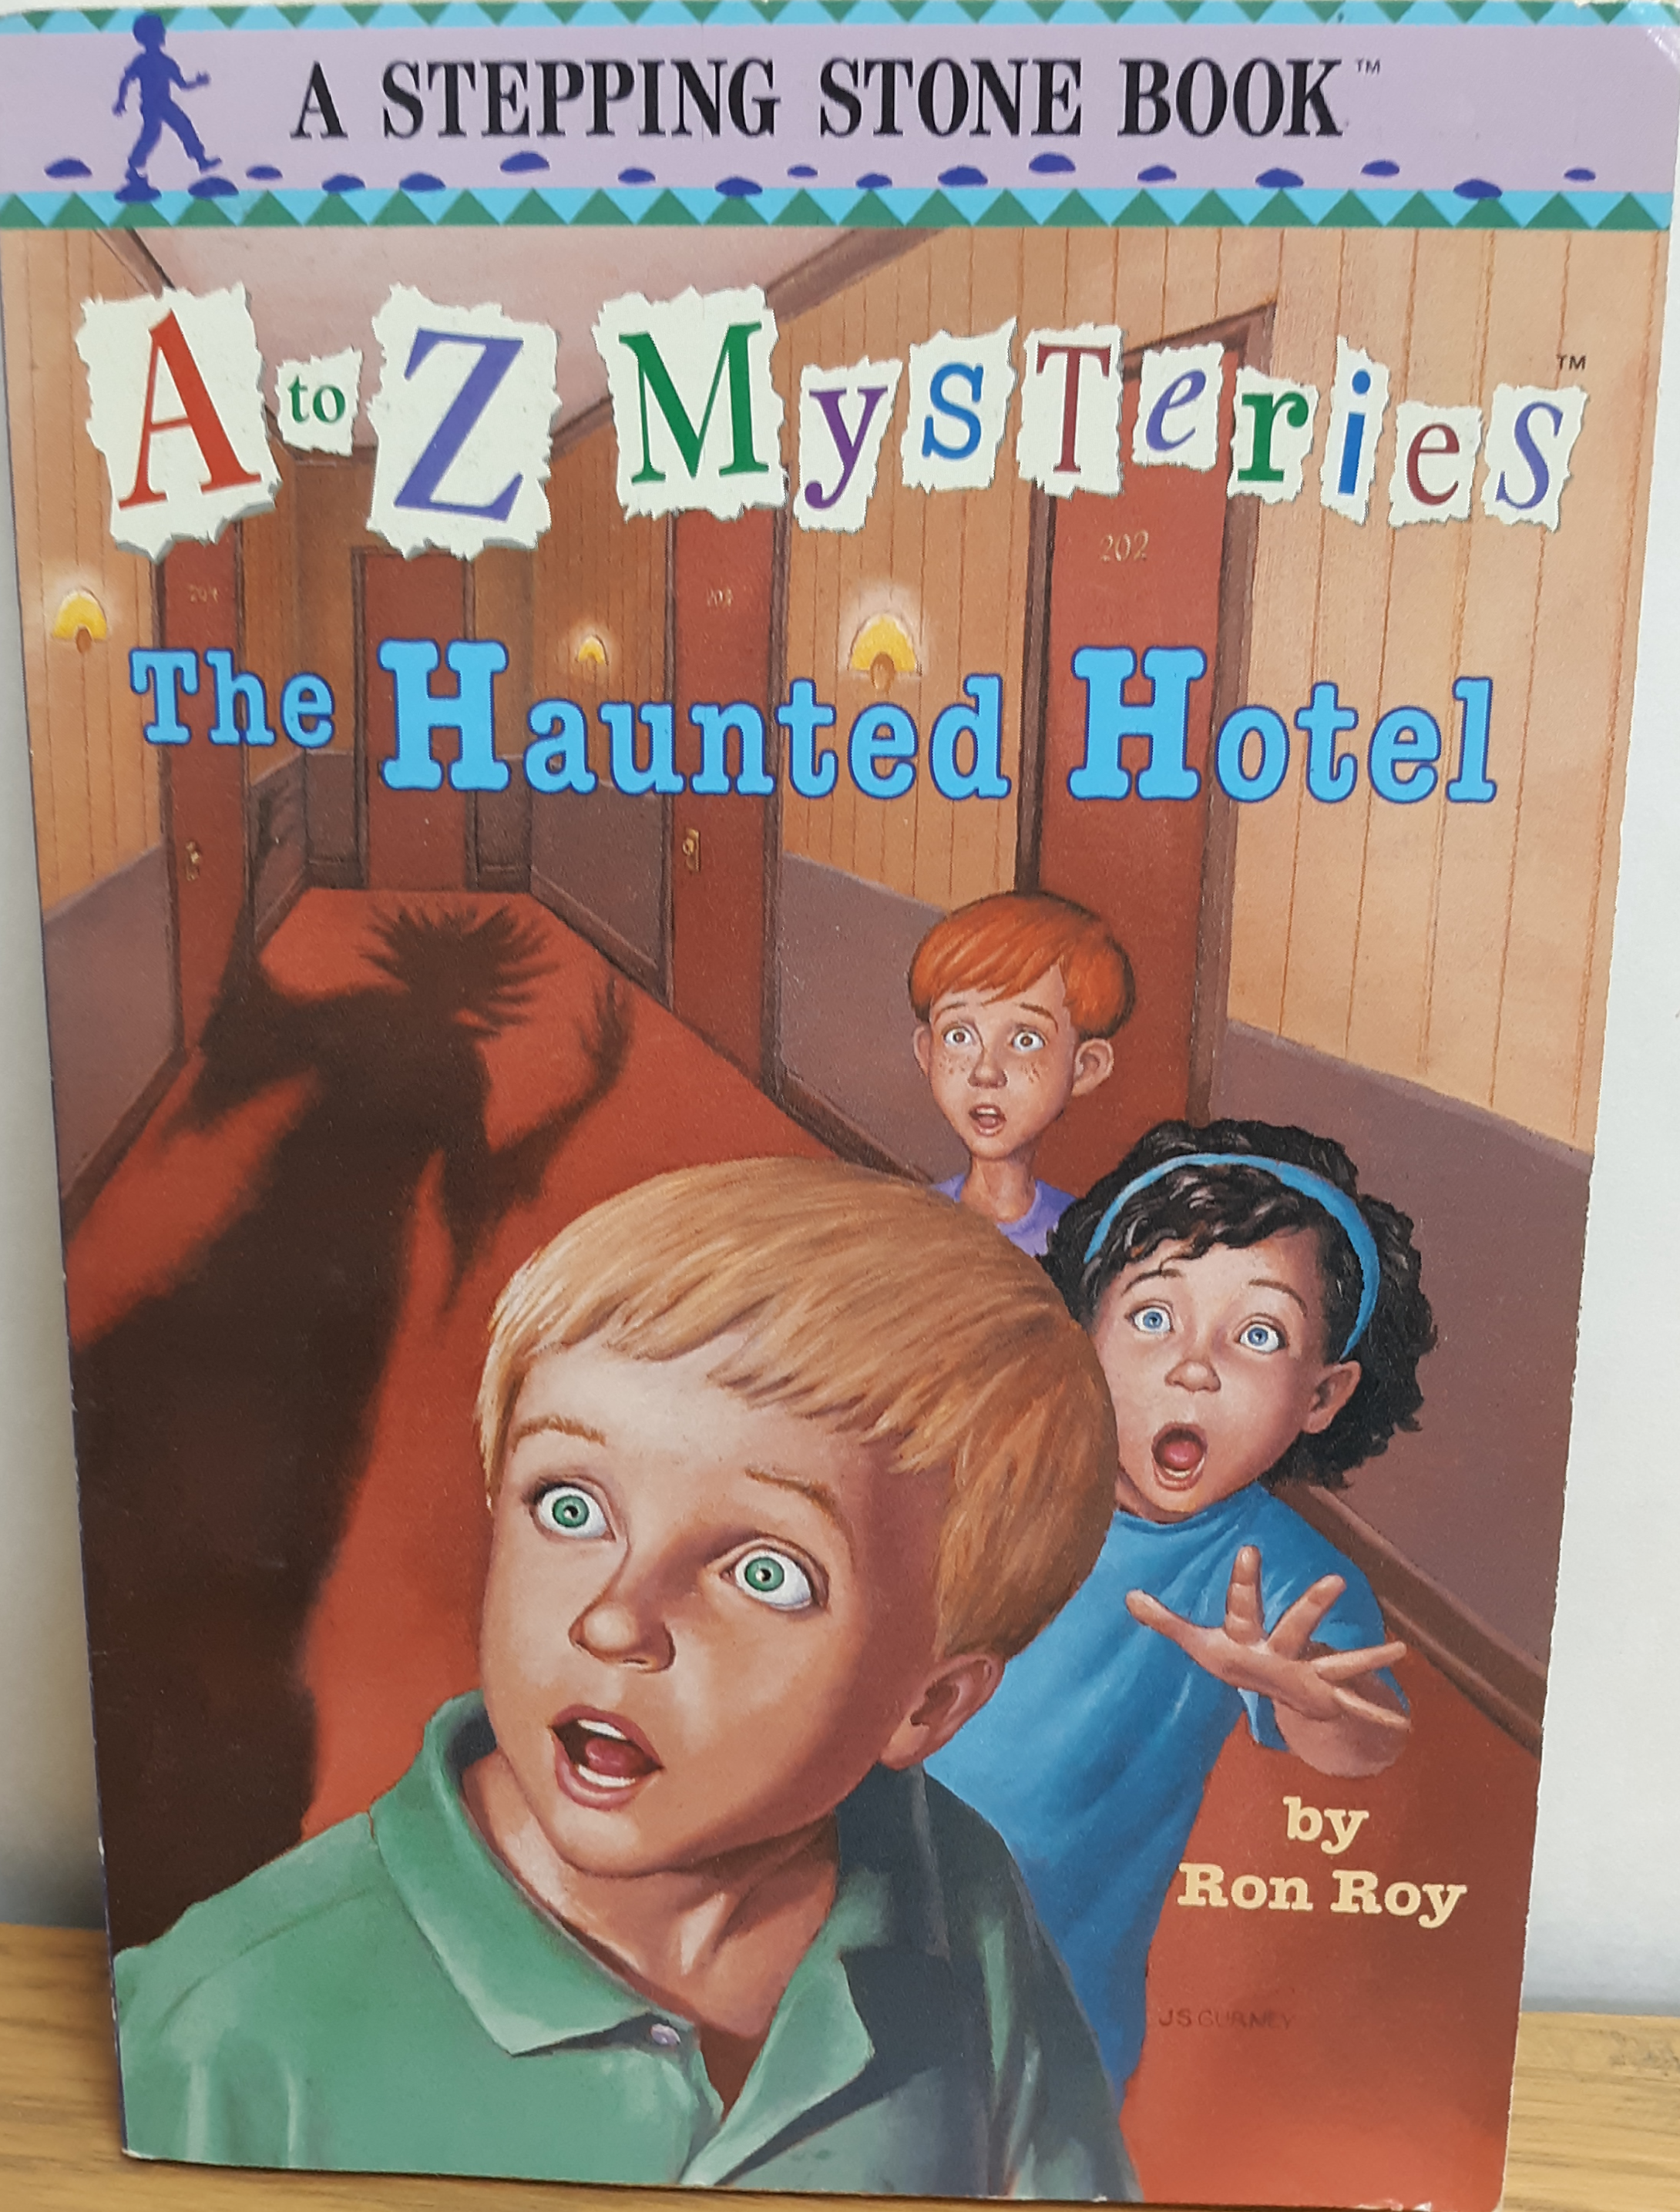 https://0201.nccdn.net/1_2/000/000/0a7/18b/haunted-hotel.png